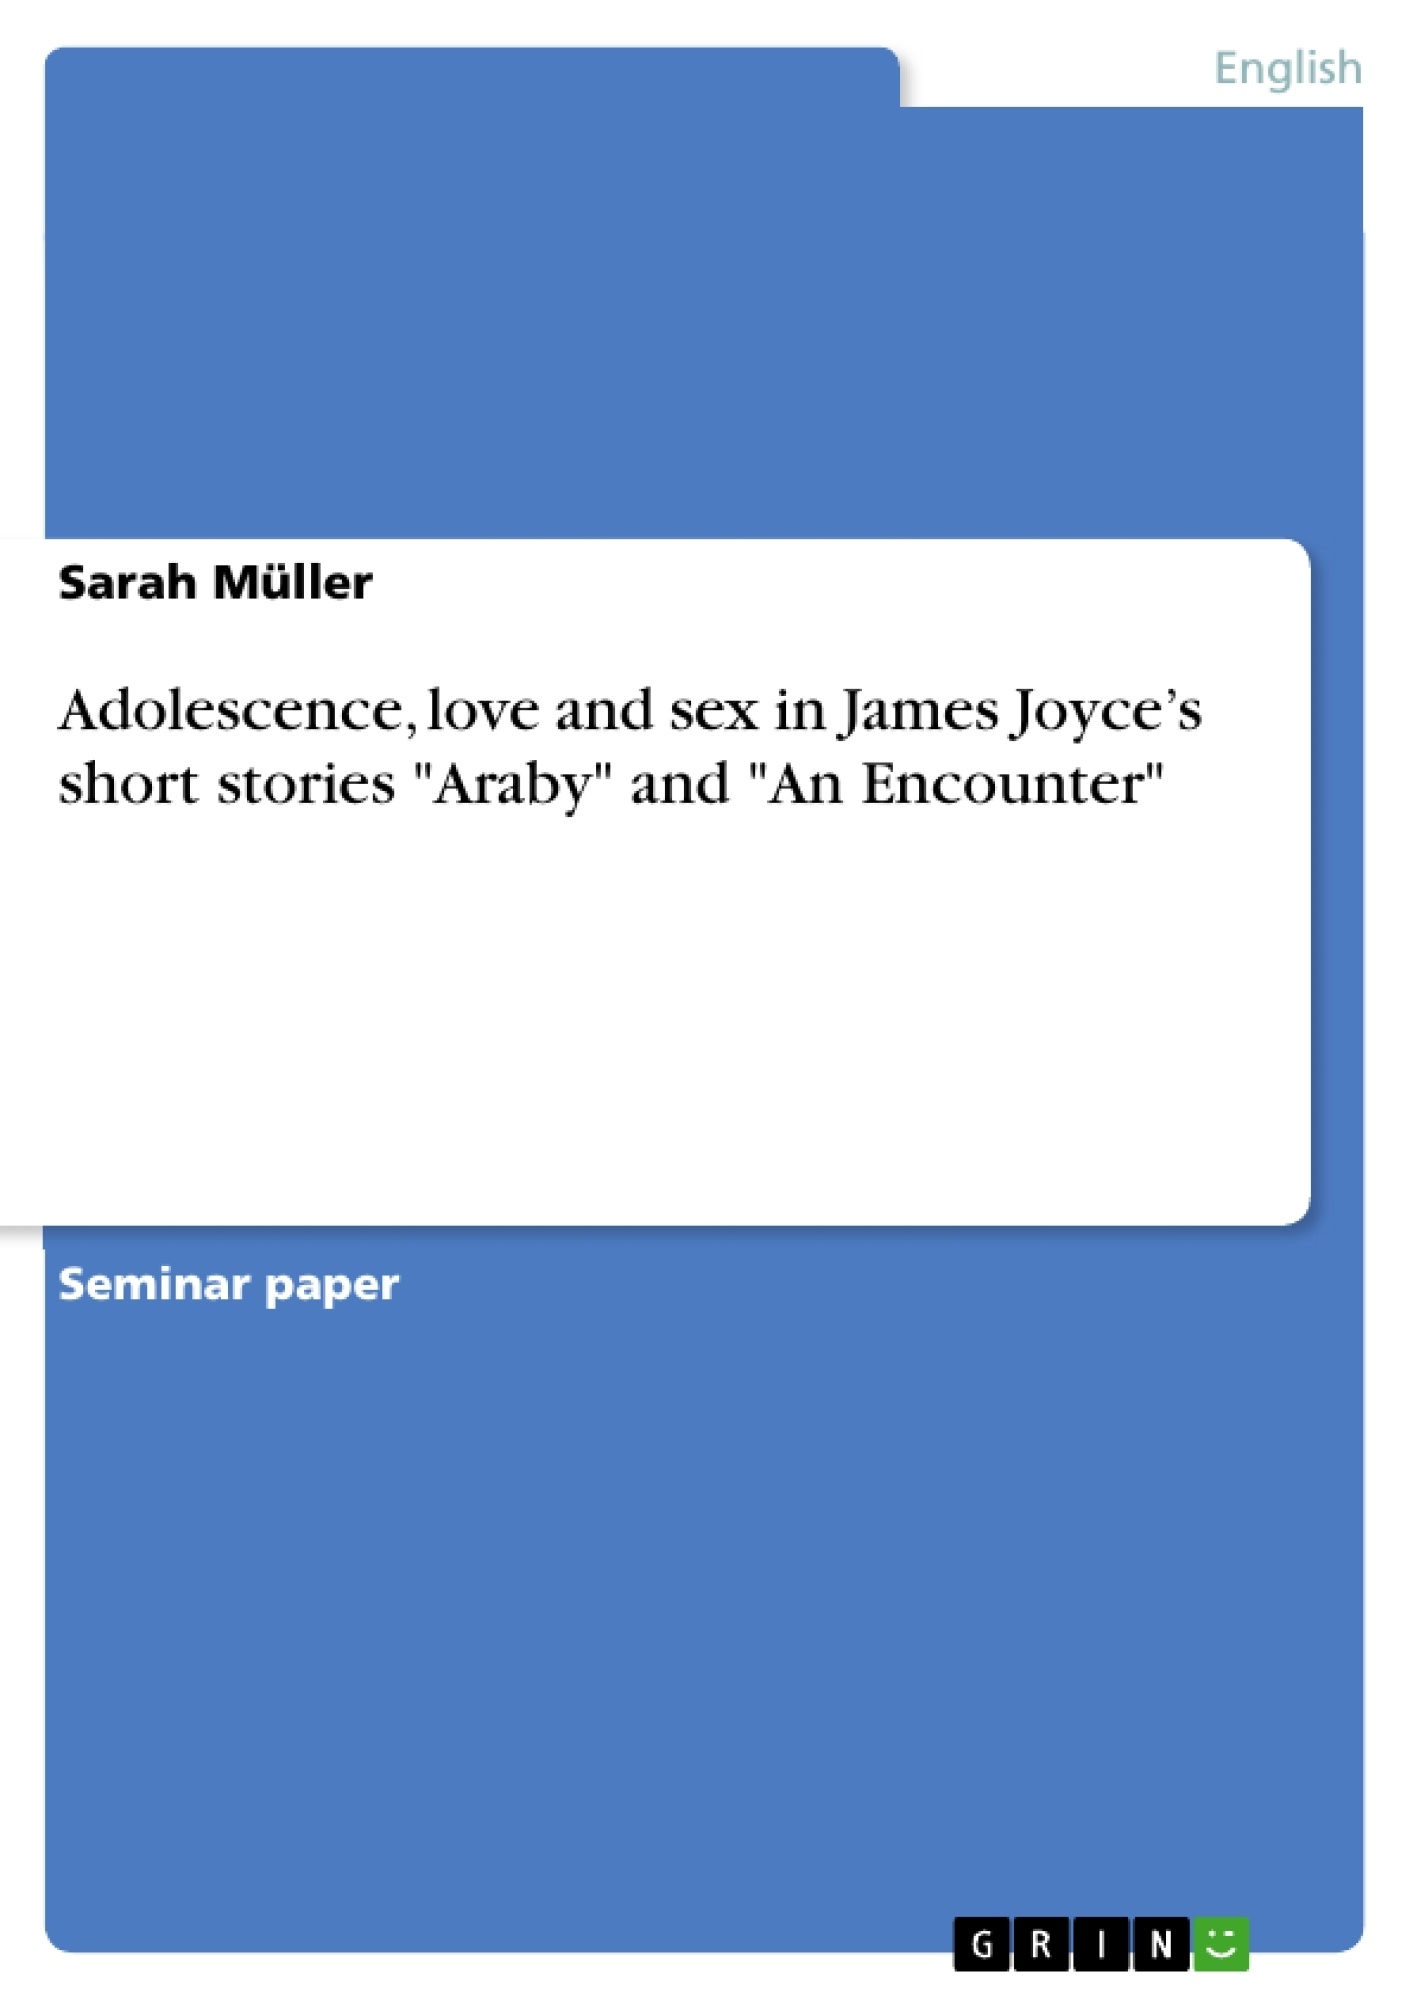 adolescence love and sex in james joyce s short stories araby adolescence love and sex in james joyce s short stories araby publish your master s thesis bachelor s thesis essay or term paper